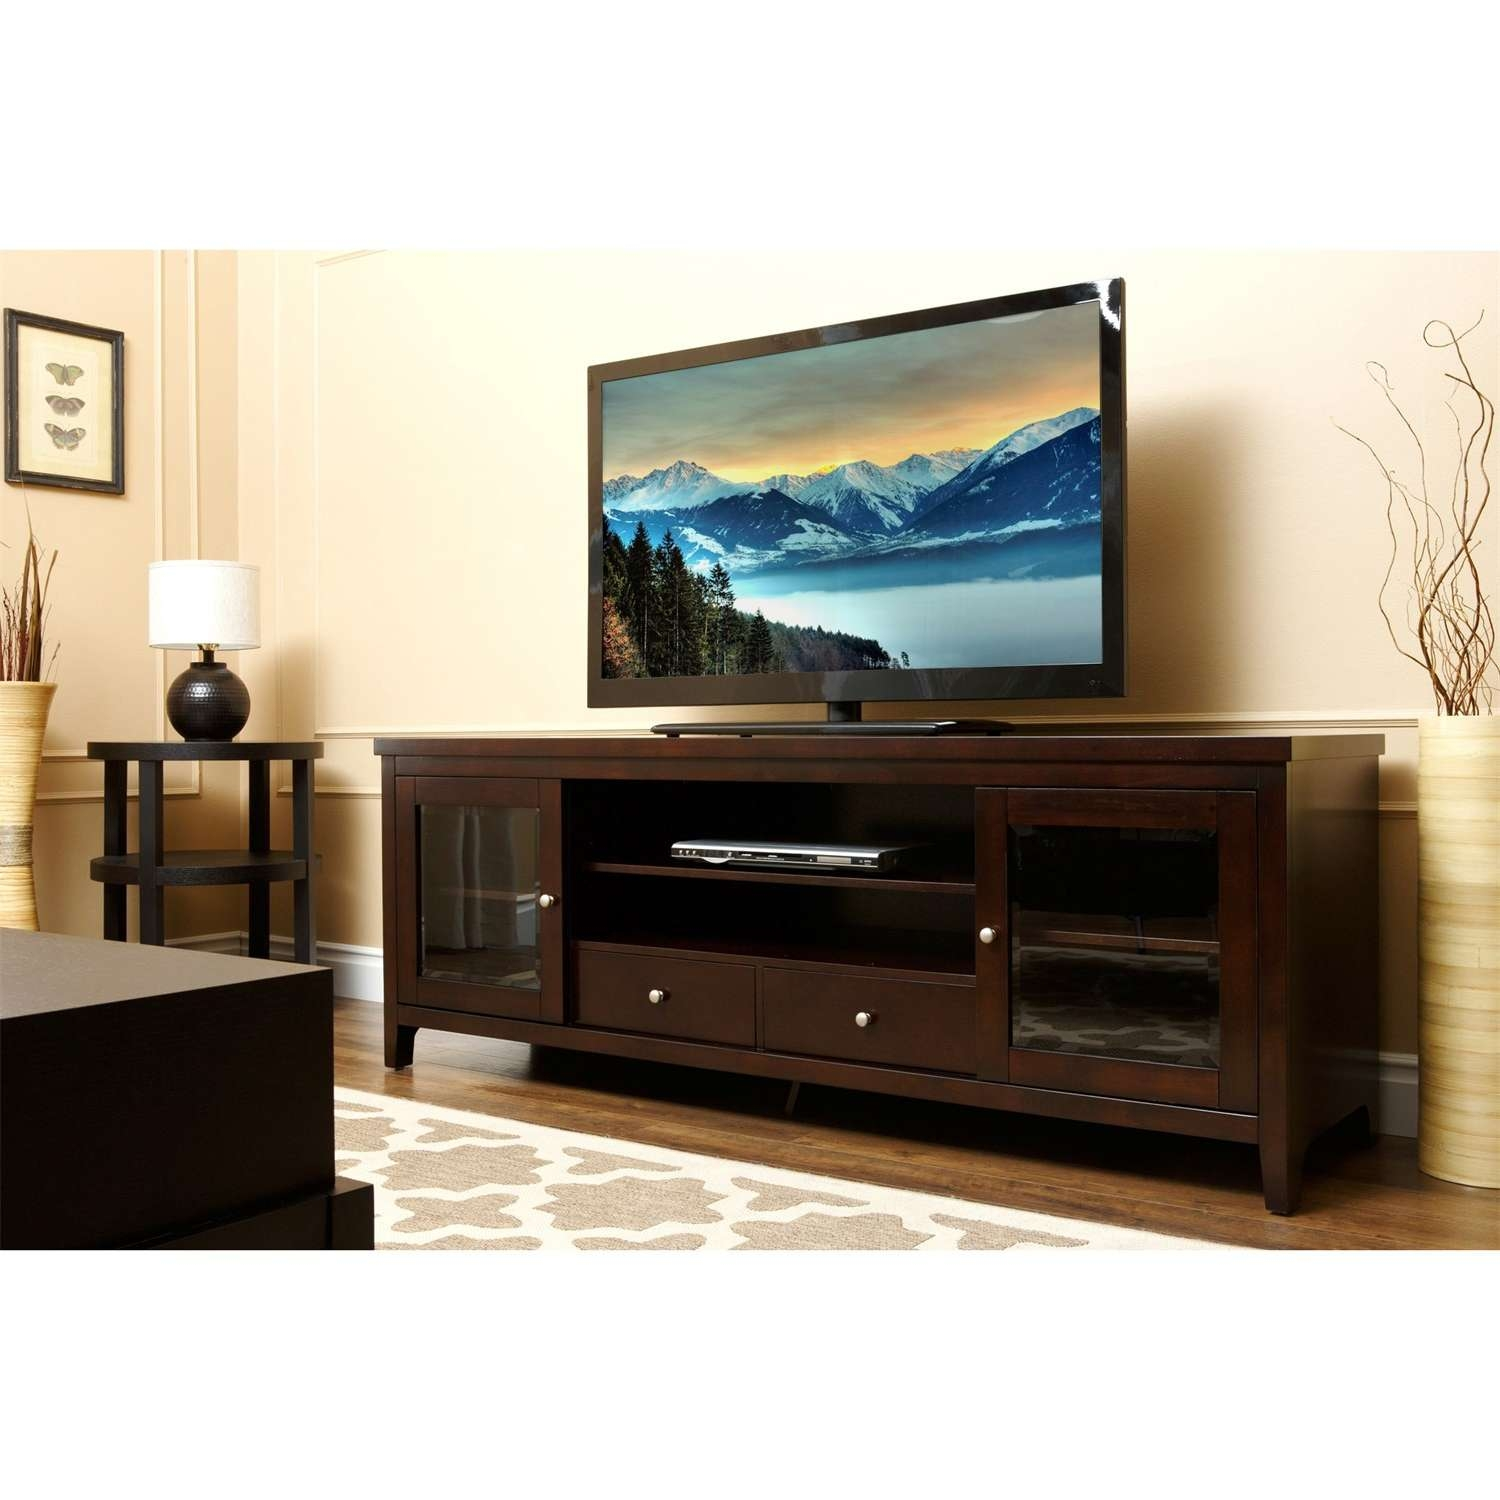 Elegant Espresso Tv Stands 62 For Home Improvement Ideas With Regarding Expresso Tv Stands (View 4 of 15)